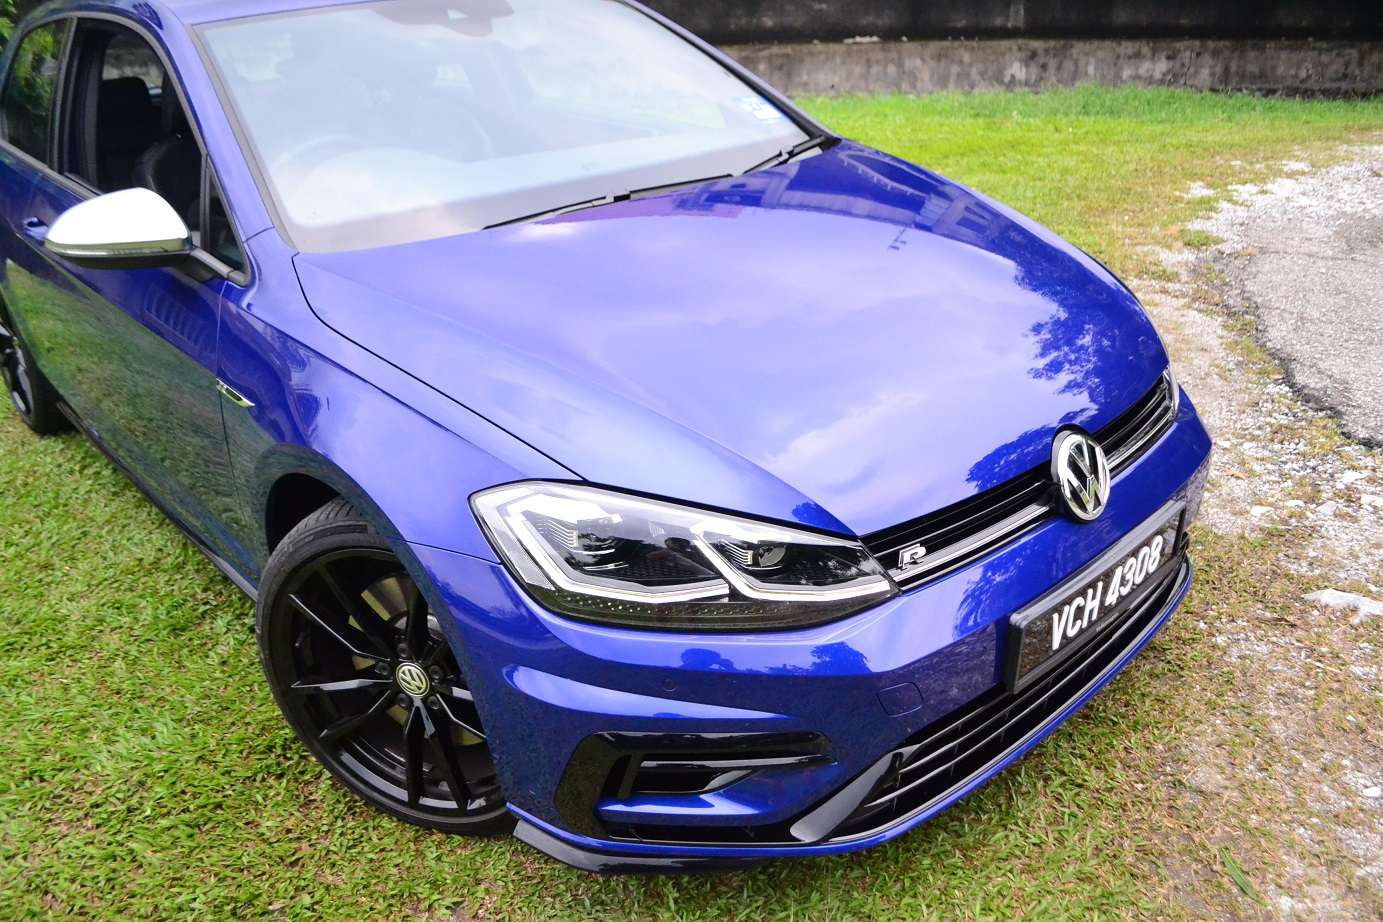 The Volkswagen Golf R - Making life a little bit more